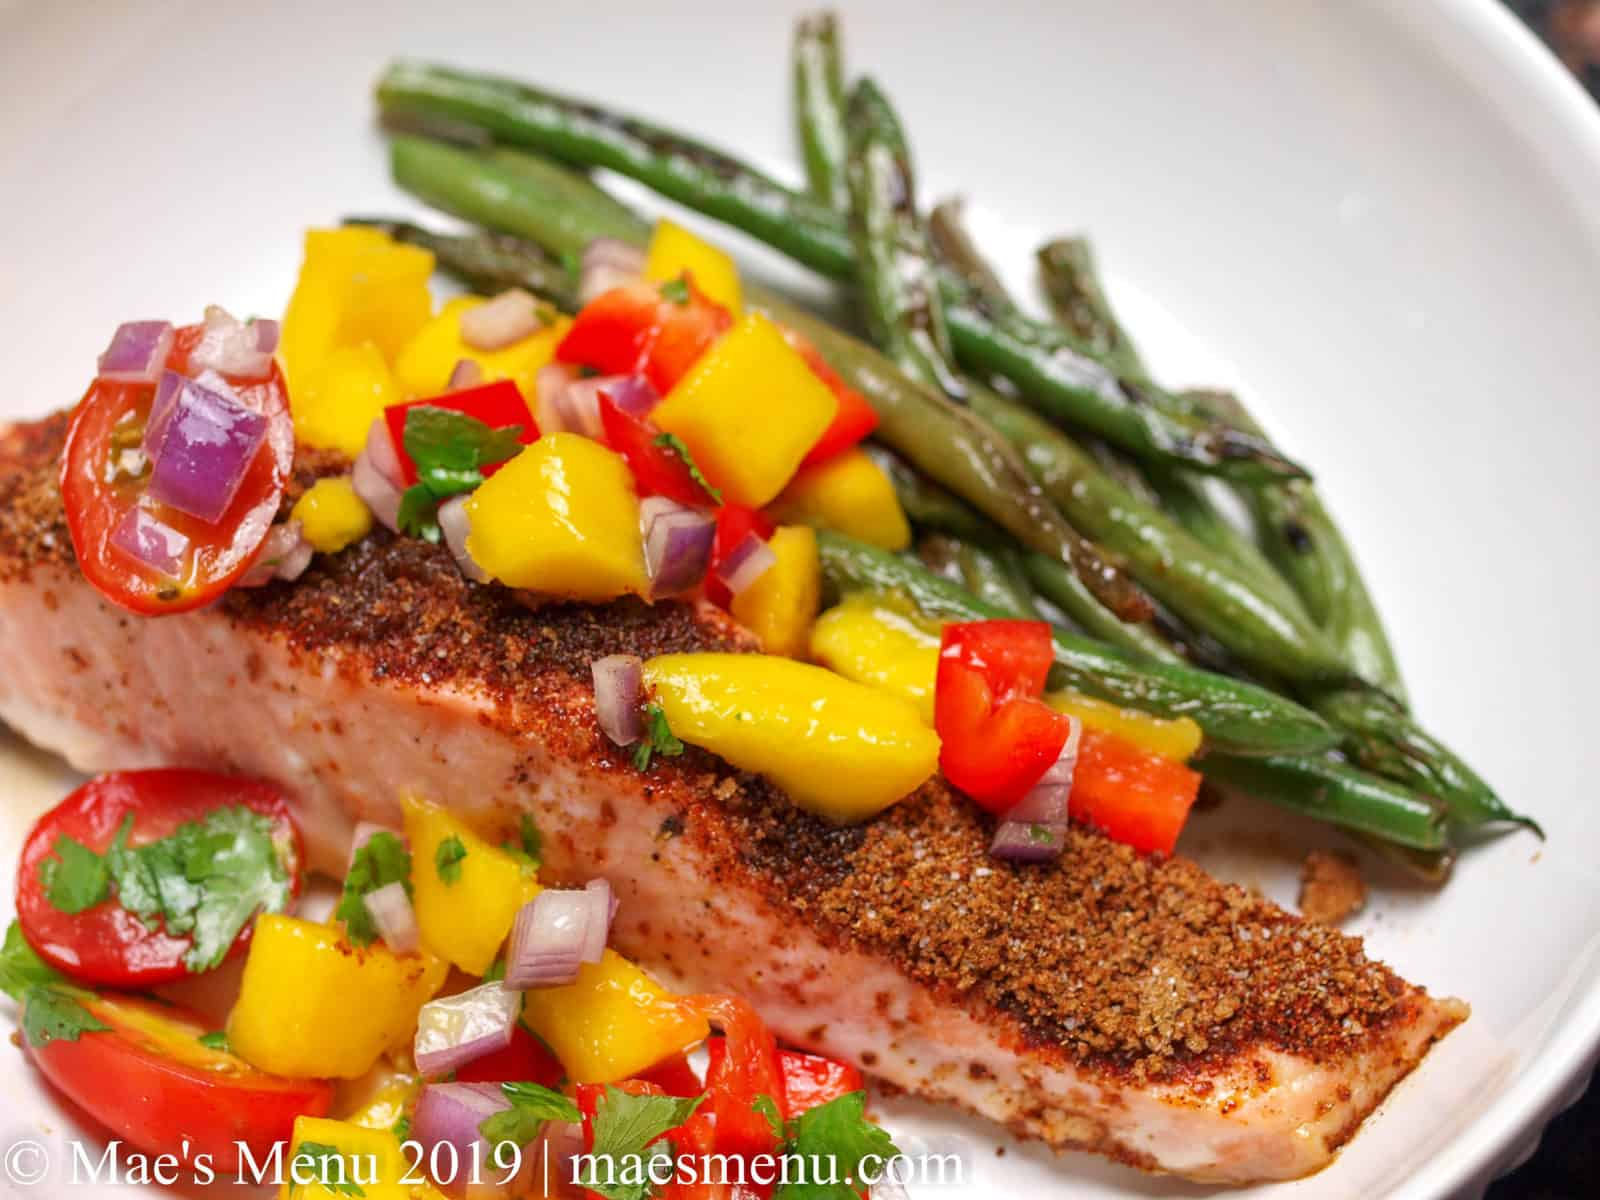 Spicy Baked Salmon with Mango Salsa in a white bowl with green beans